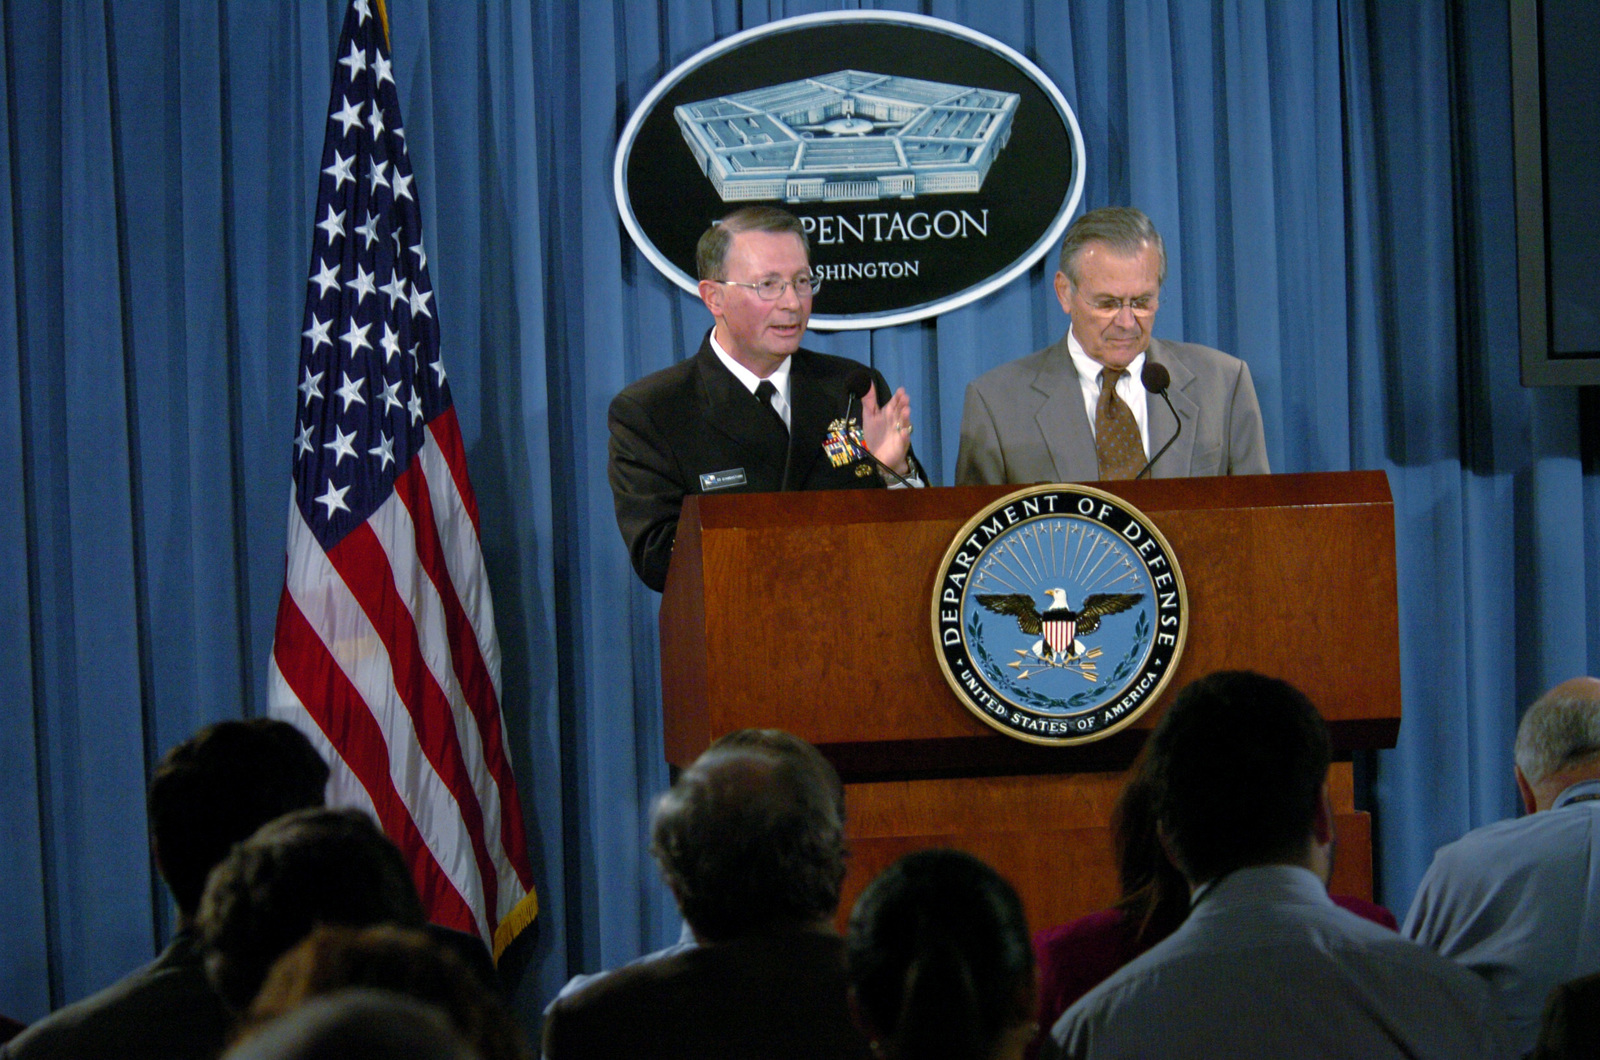 The Honorable Donald H. Rumsfeld (right), U.S. Secretary of Defense, and U.S. Navy Adm. Edmund P. Giambastiani (left), Vice Chairman of the Joint Chiefs of STAFF, answer questions during a press conference in the Pentagon on Nov. 15, 2005. (DoD photo by TECH. SGT. Sean P. Houlihan) (Released)